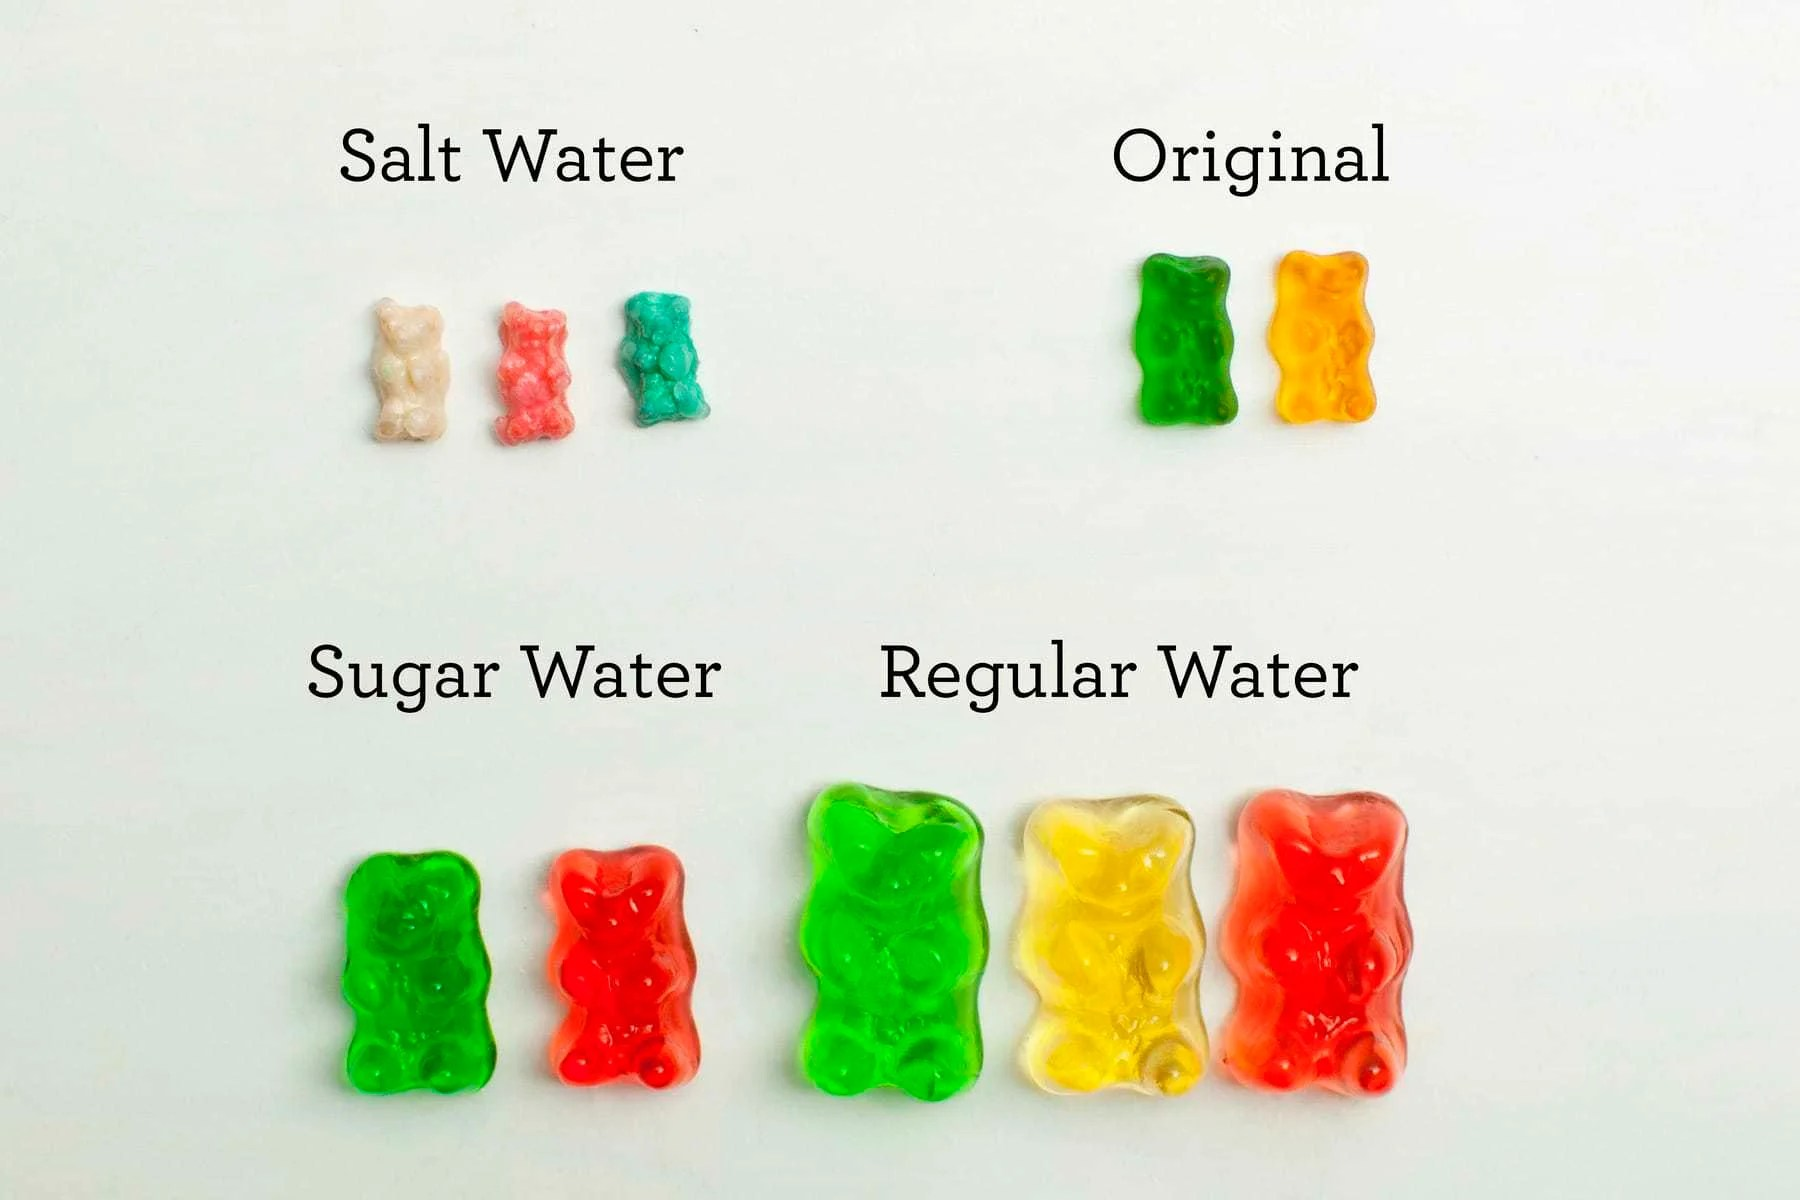 What Does Gummy Bear Mean